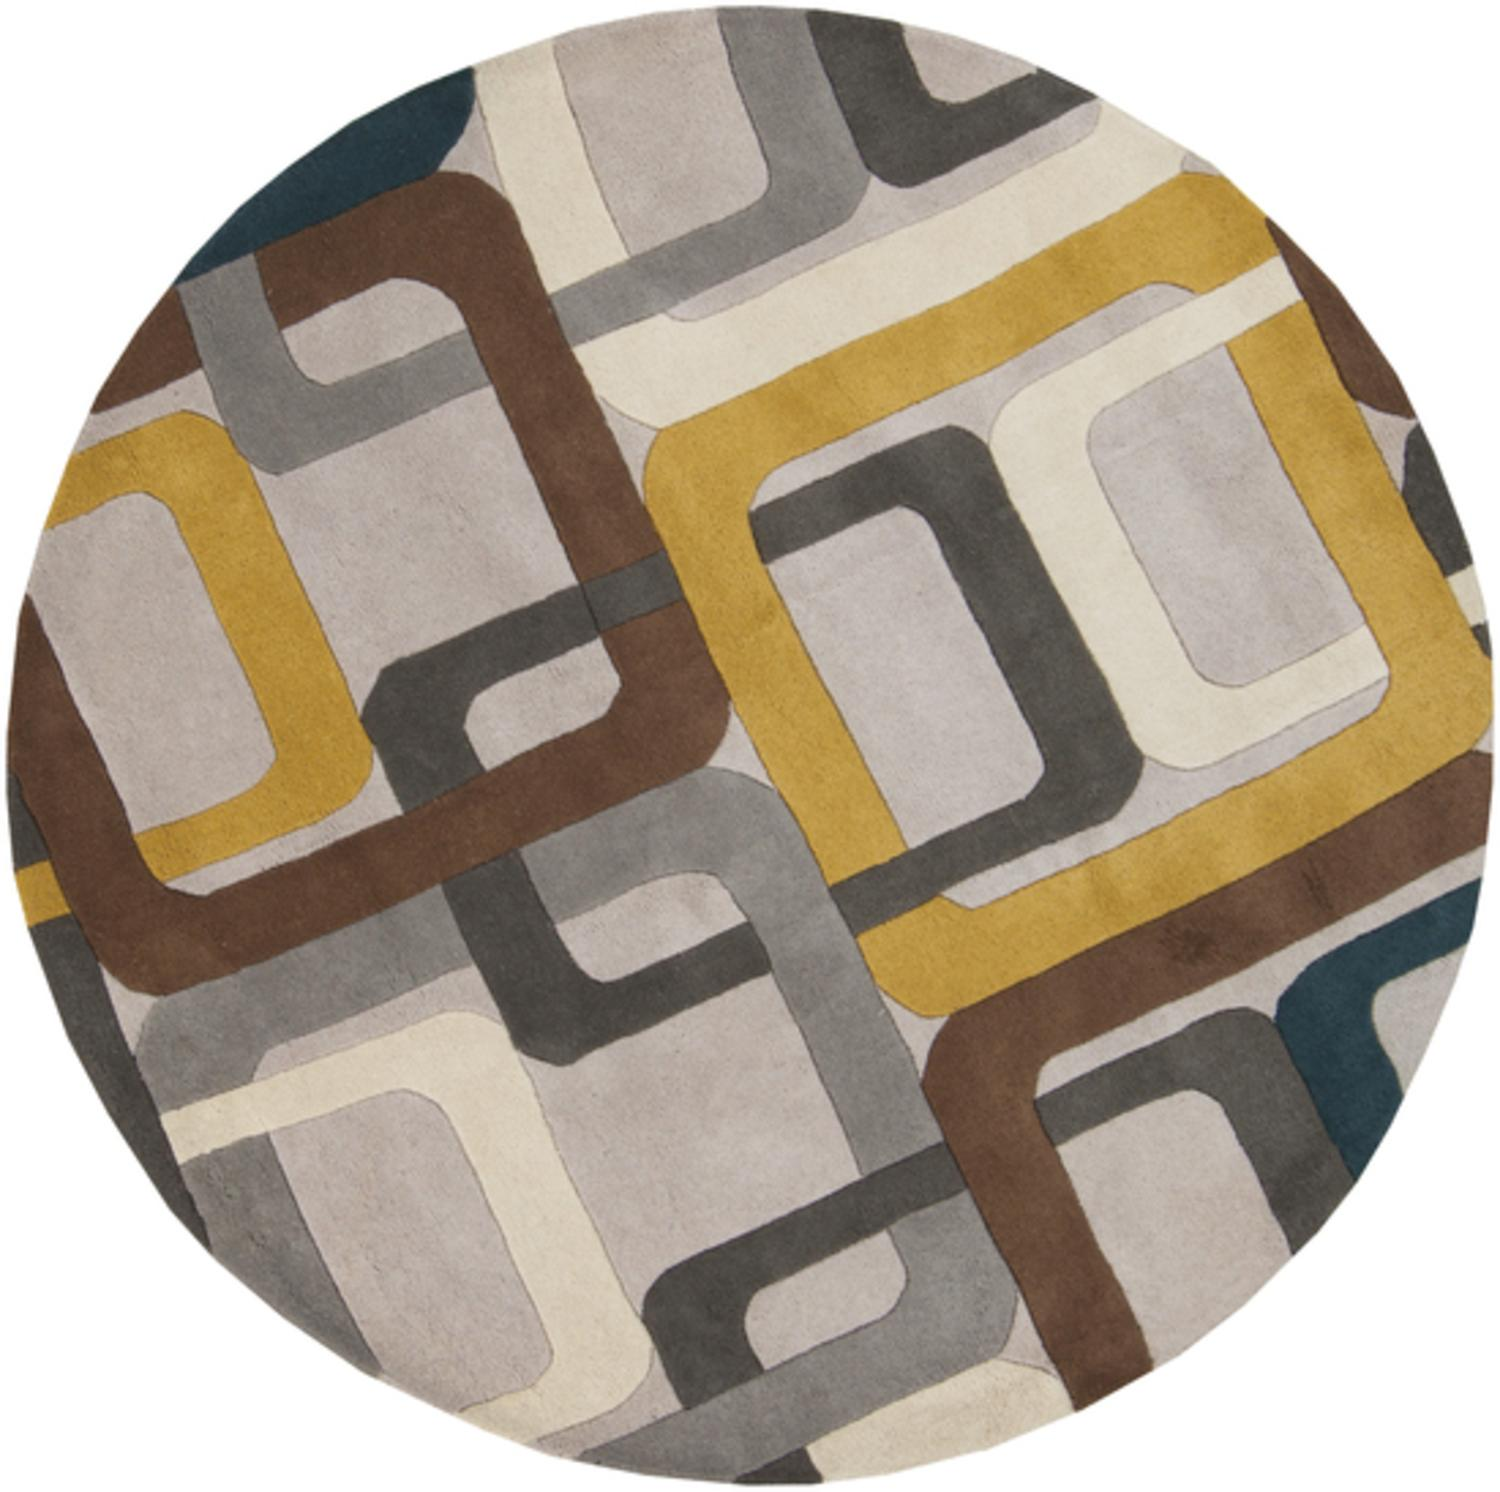 9.75' Soporific Squircle Gray, White & Teal Blue Hand Tufted Round Wool Area Rug